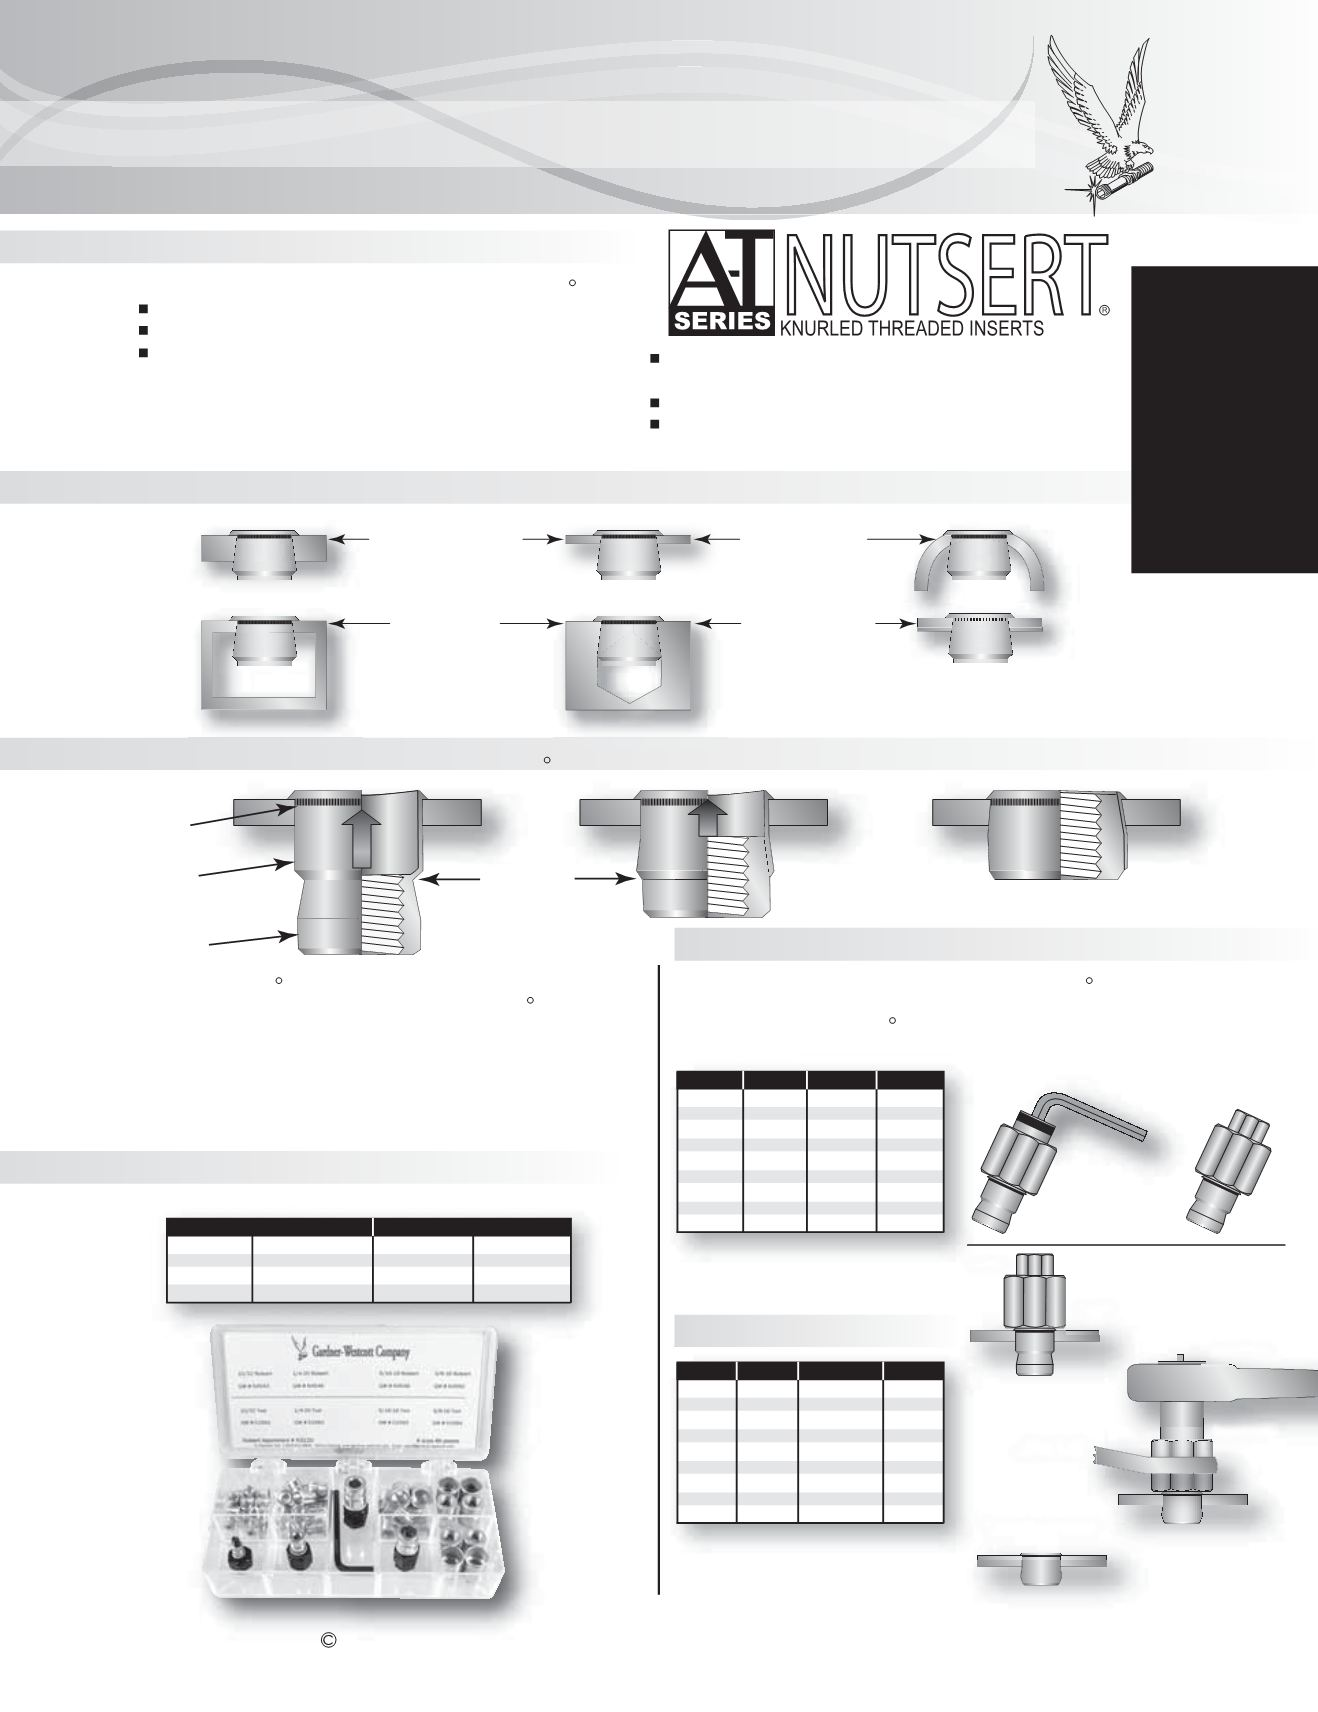 hight resolution of gardner westcott company page 109 109 electrical andnutserts handymanstyleassortmentwithtools